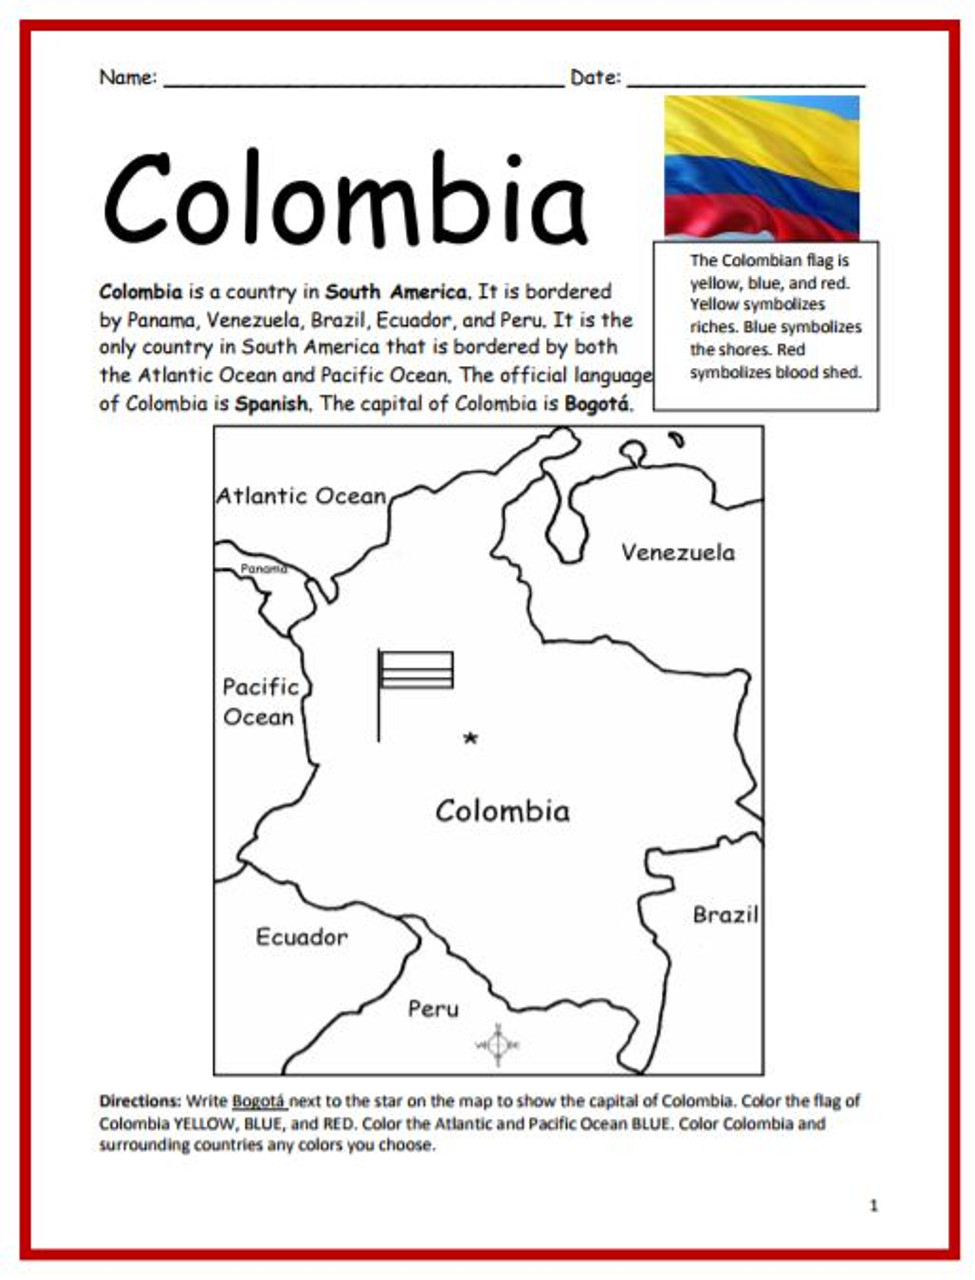 Color and Learn Geography - Colombia (FREE)